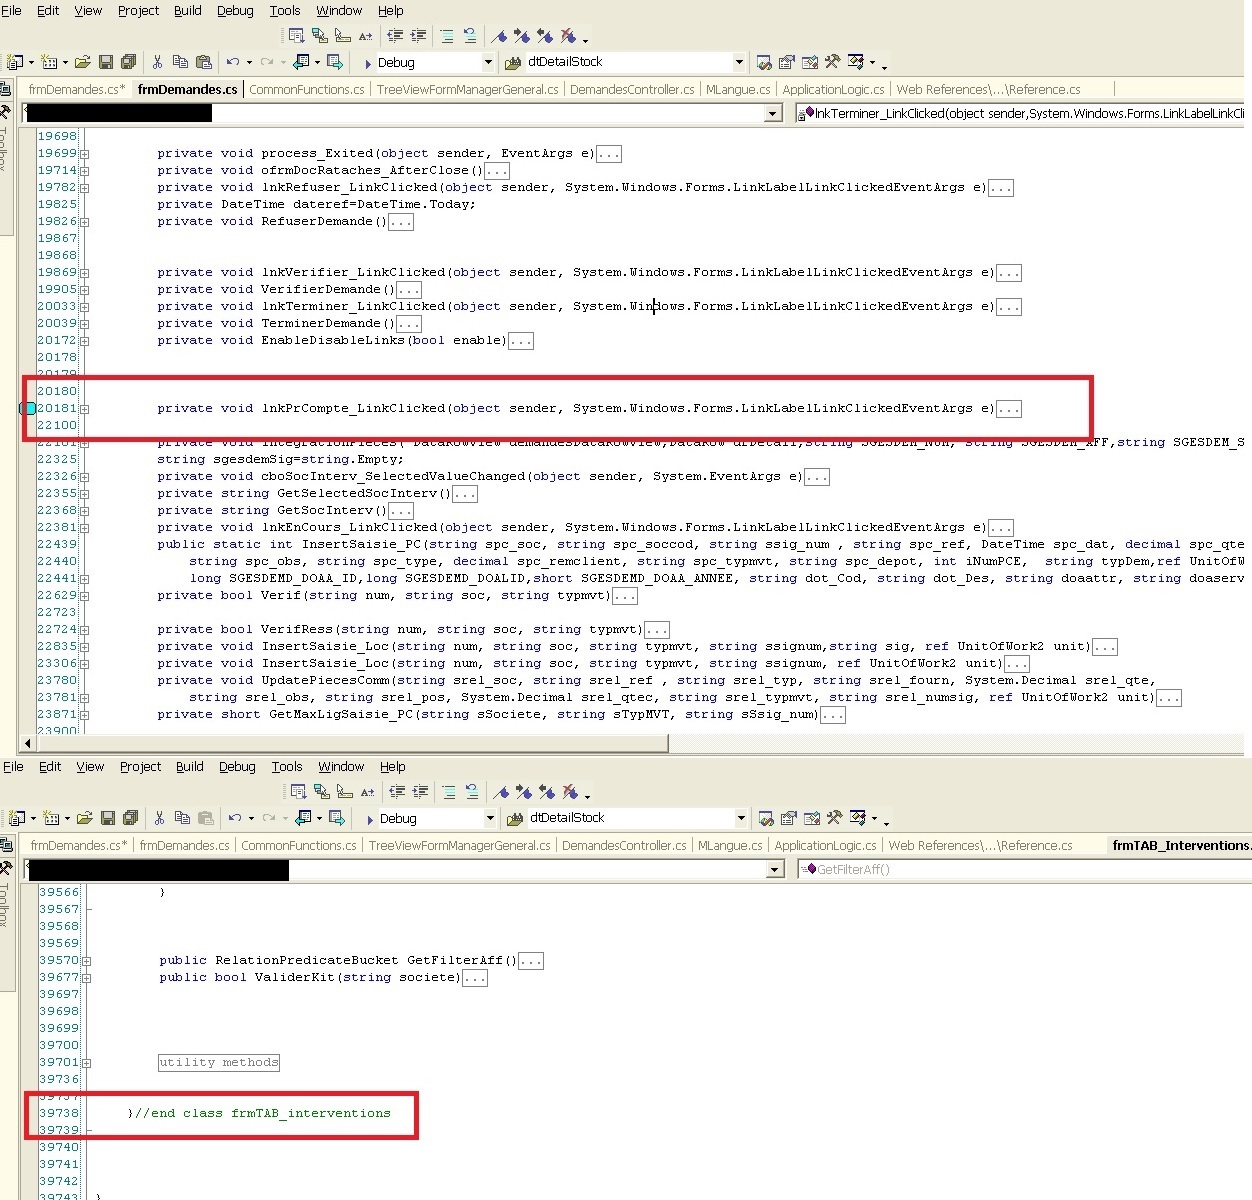 A screengrab of Visual Studio 2003, showing the method lnkPrCompte_LinkClicked is over 2,000 lines in a 39,000 line file